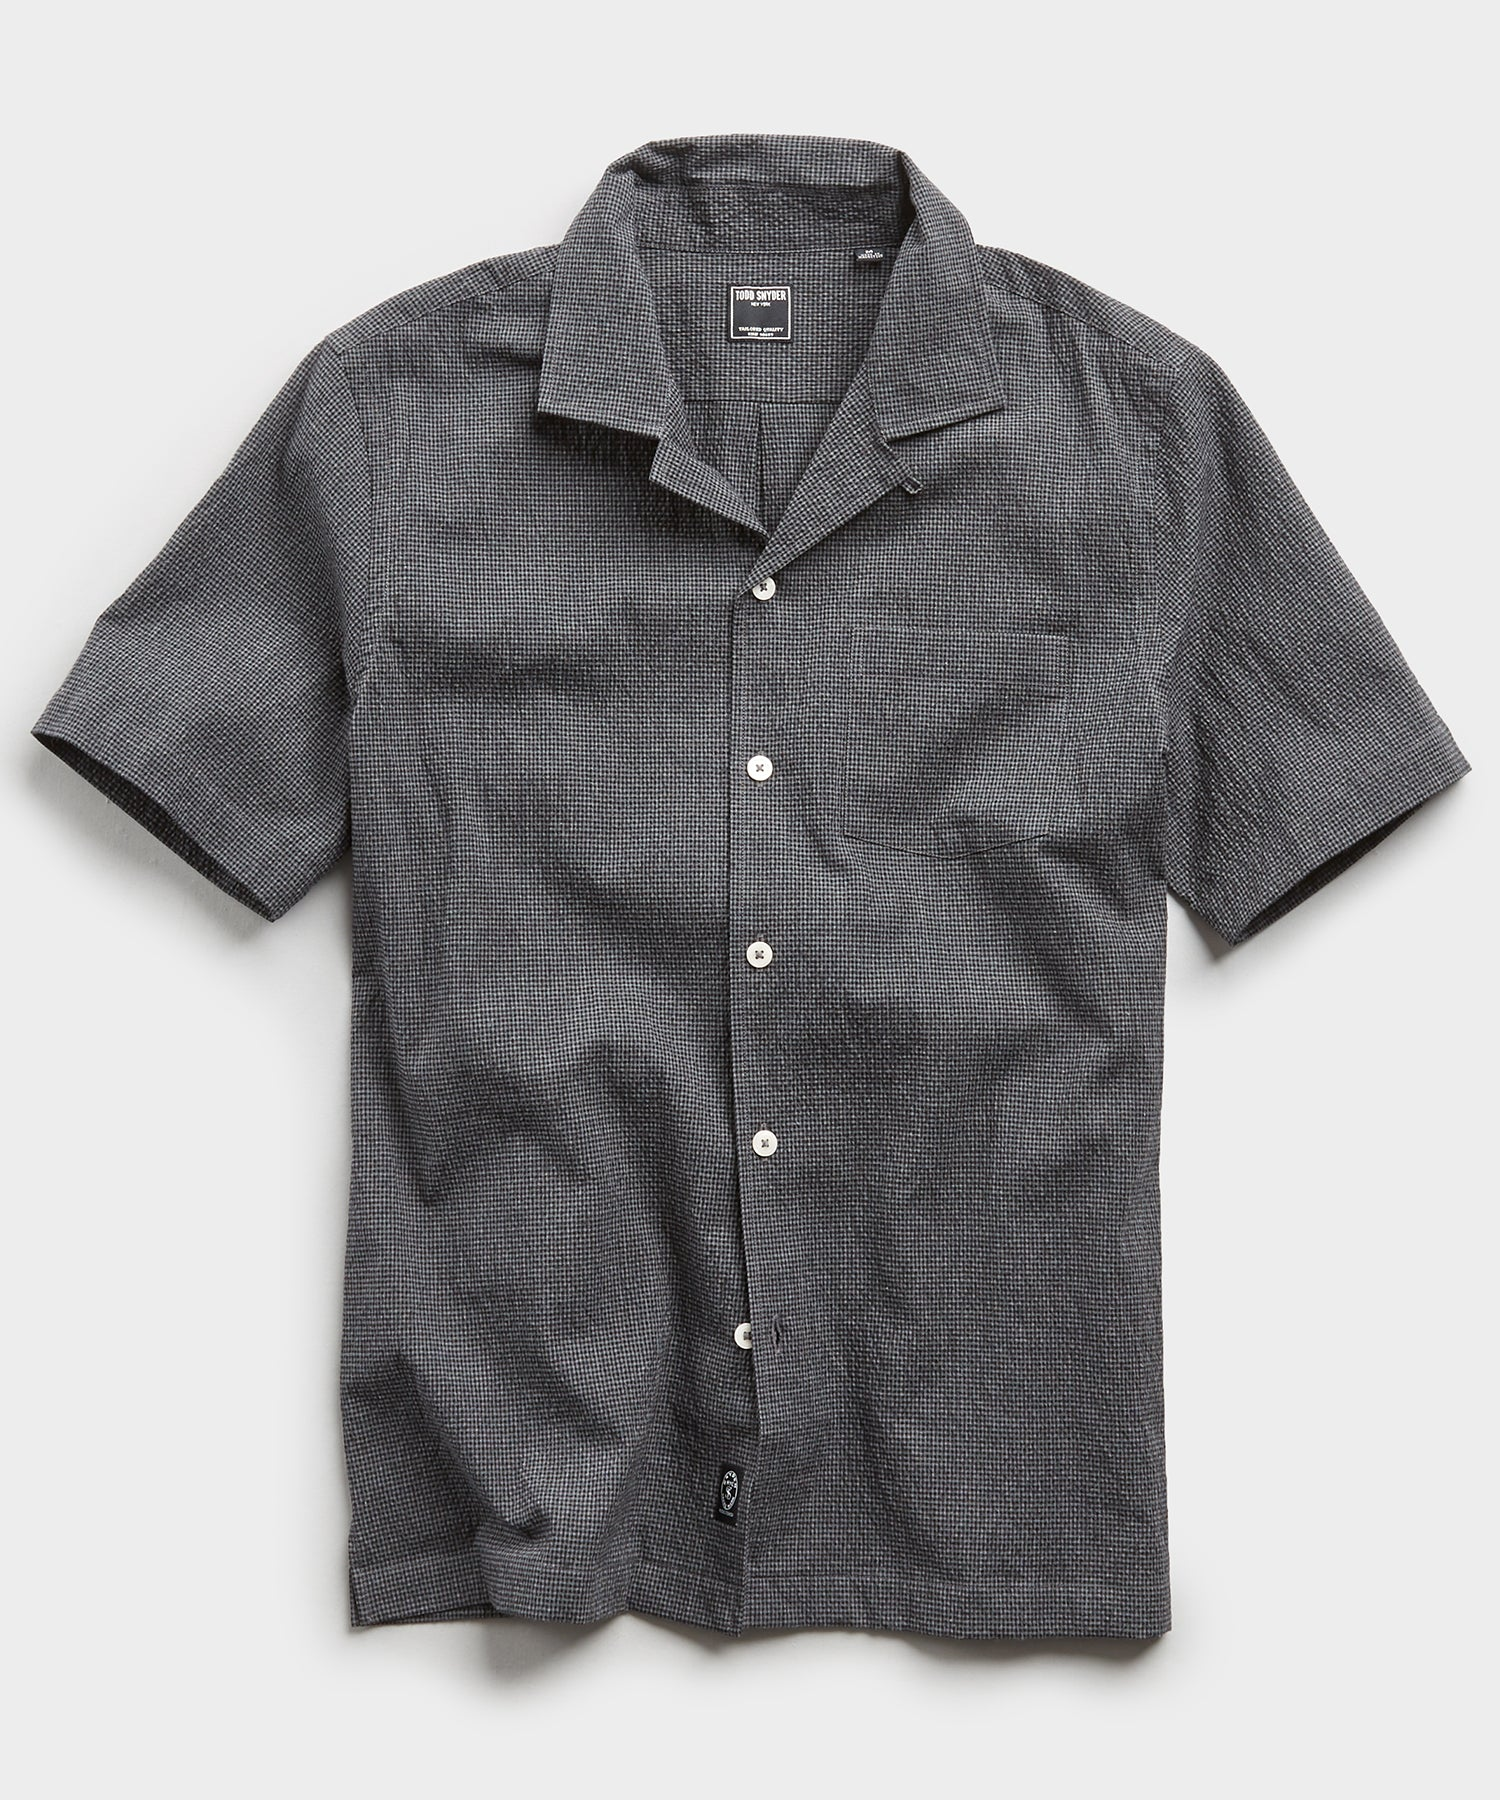 Camp Collar Gingham Seersucker Shirt in Charcoal